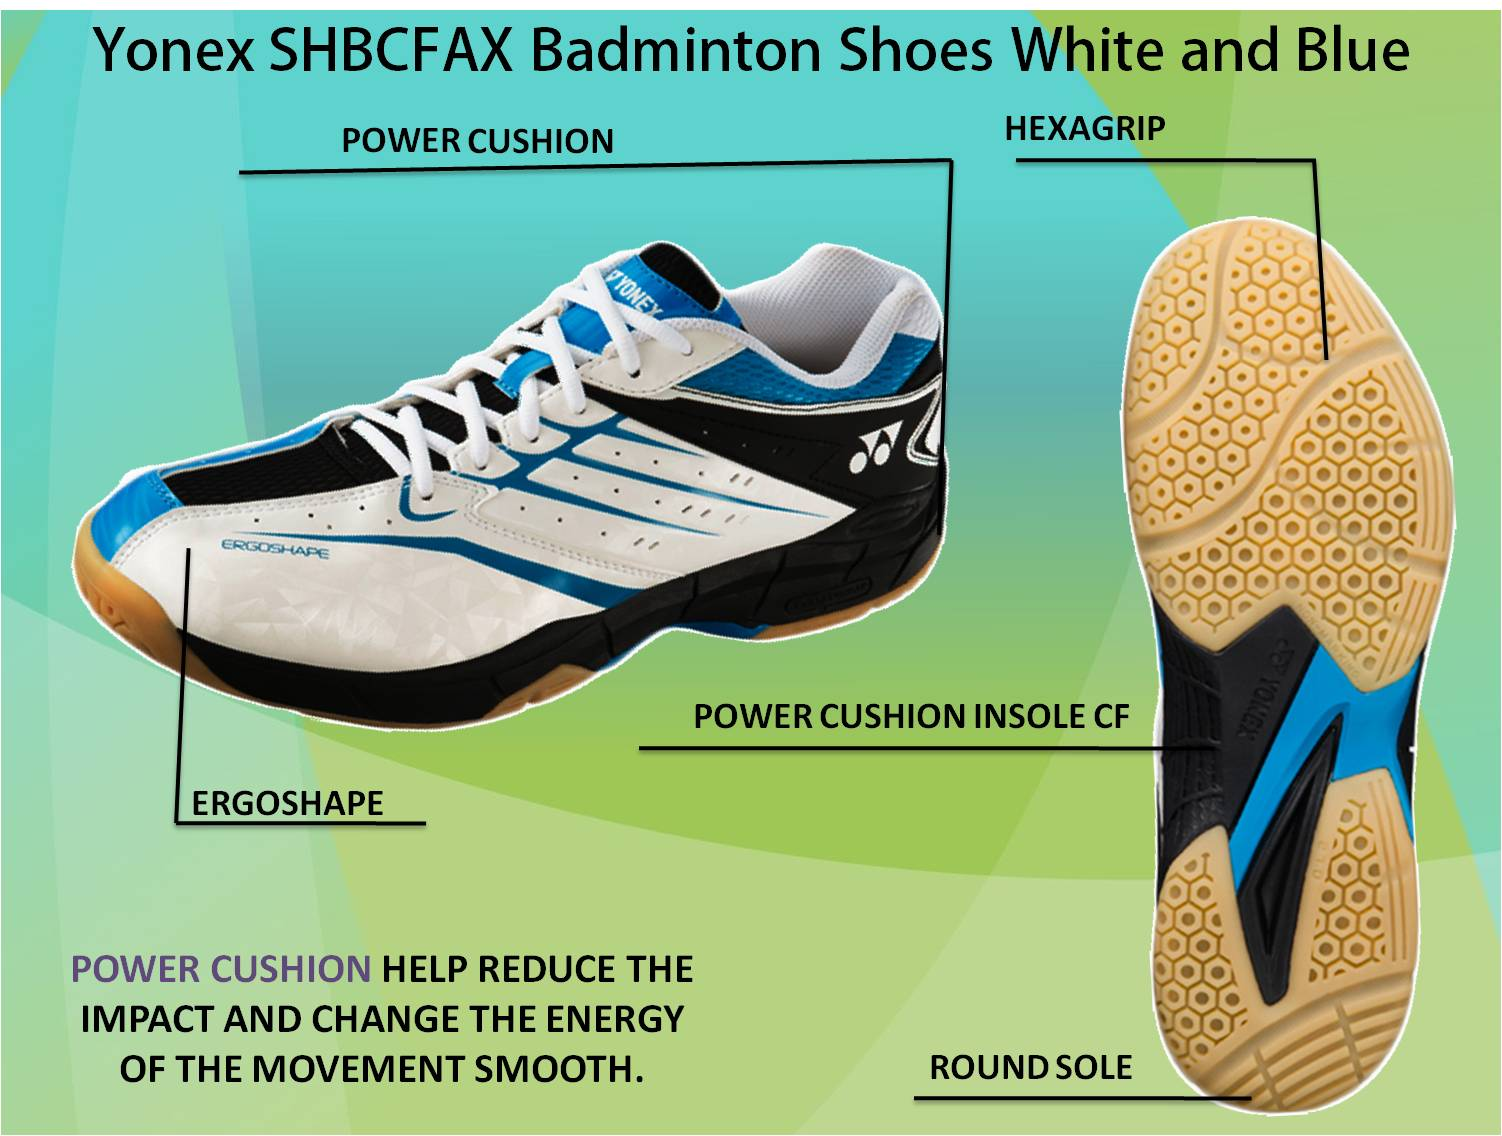 Yonex SHBCFAX Badminton Shoes White and Blue